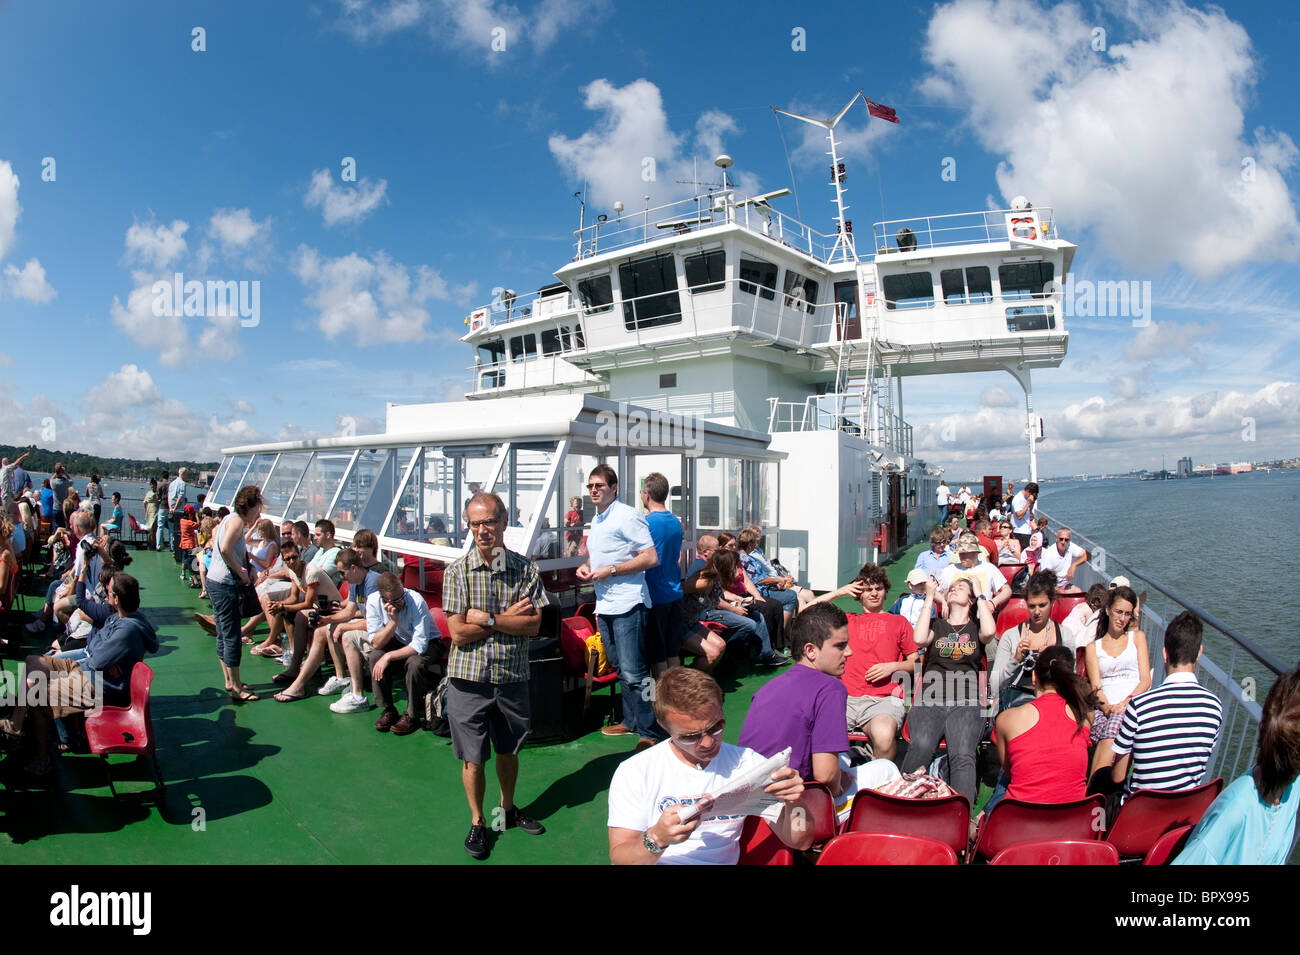 Passengers on the deck of an Isle of Wight ferry sailing across the Solent. - Stock Image